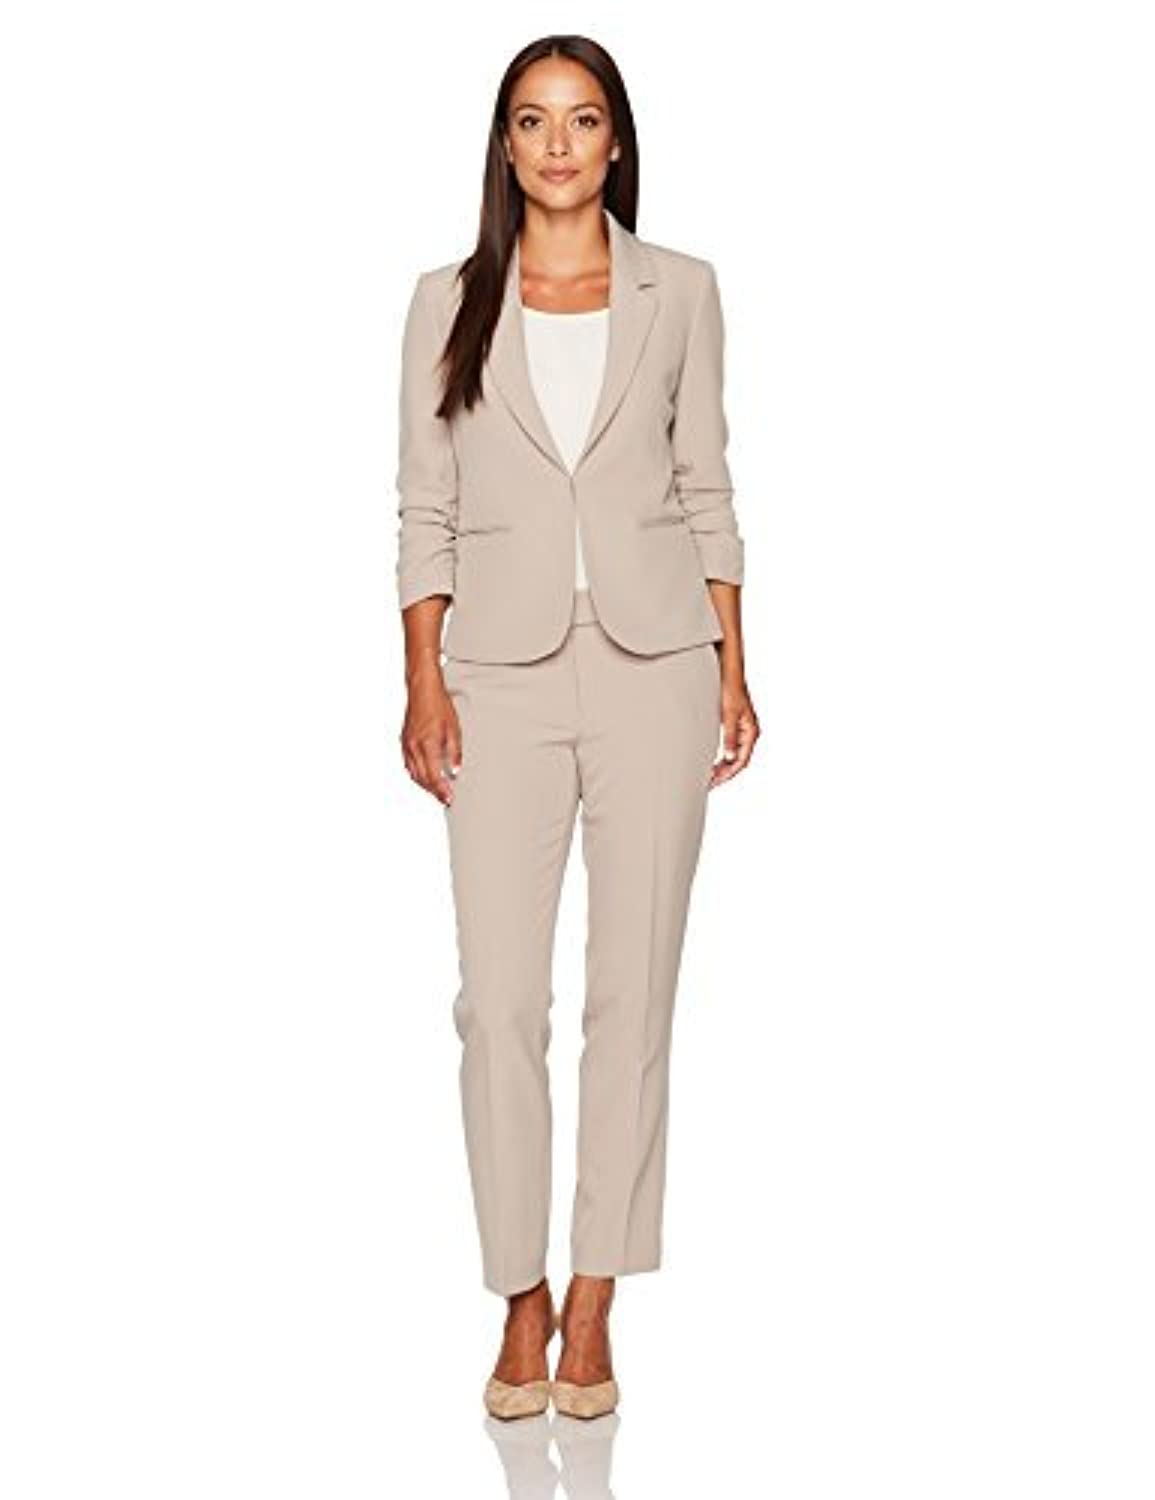 Tahari by Arthur S. Levine Women's Petite Size Stretch Crepe Pant Suit with Ruched Sleeves Beige 2P [並行輸入品]